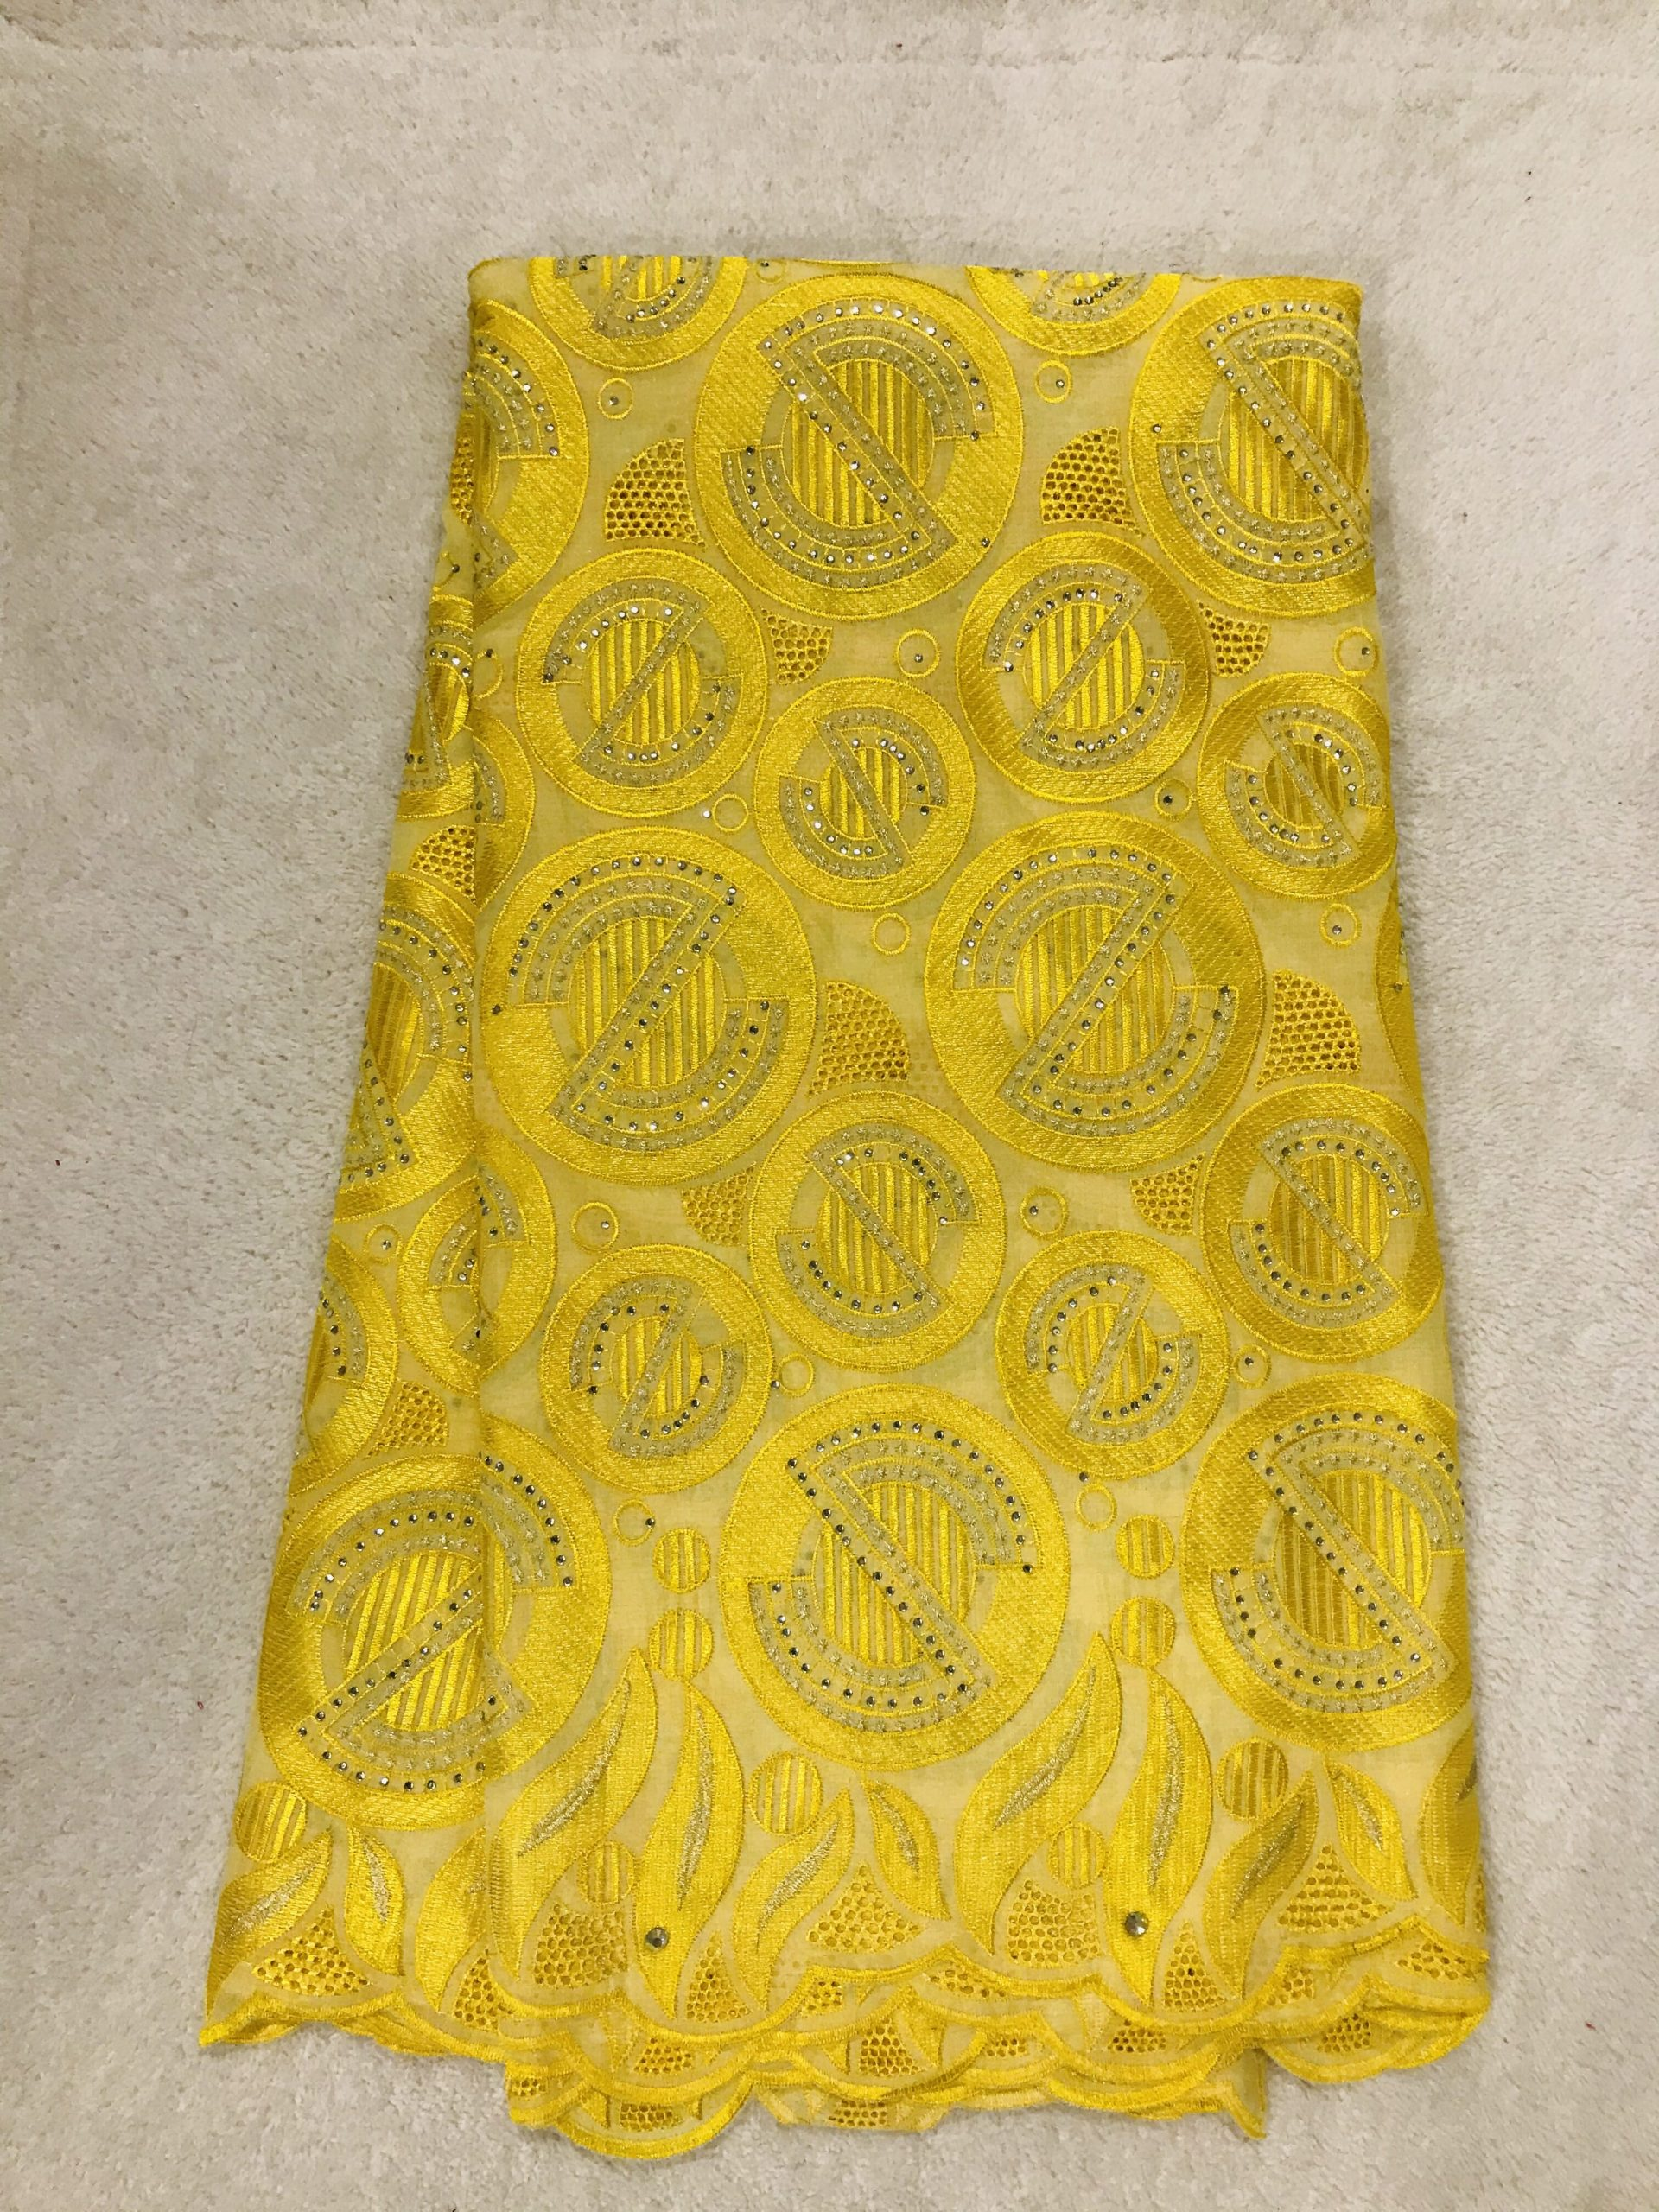 Bbfash African Fashion Lace Fabric. 5 yards 2019 fancy Yellow Embroidery Stones Lace.French Lace Fabric Embroidered and Rhinestones Coton Cord Lace for Wedding  Party & More